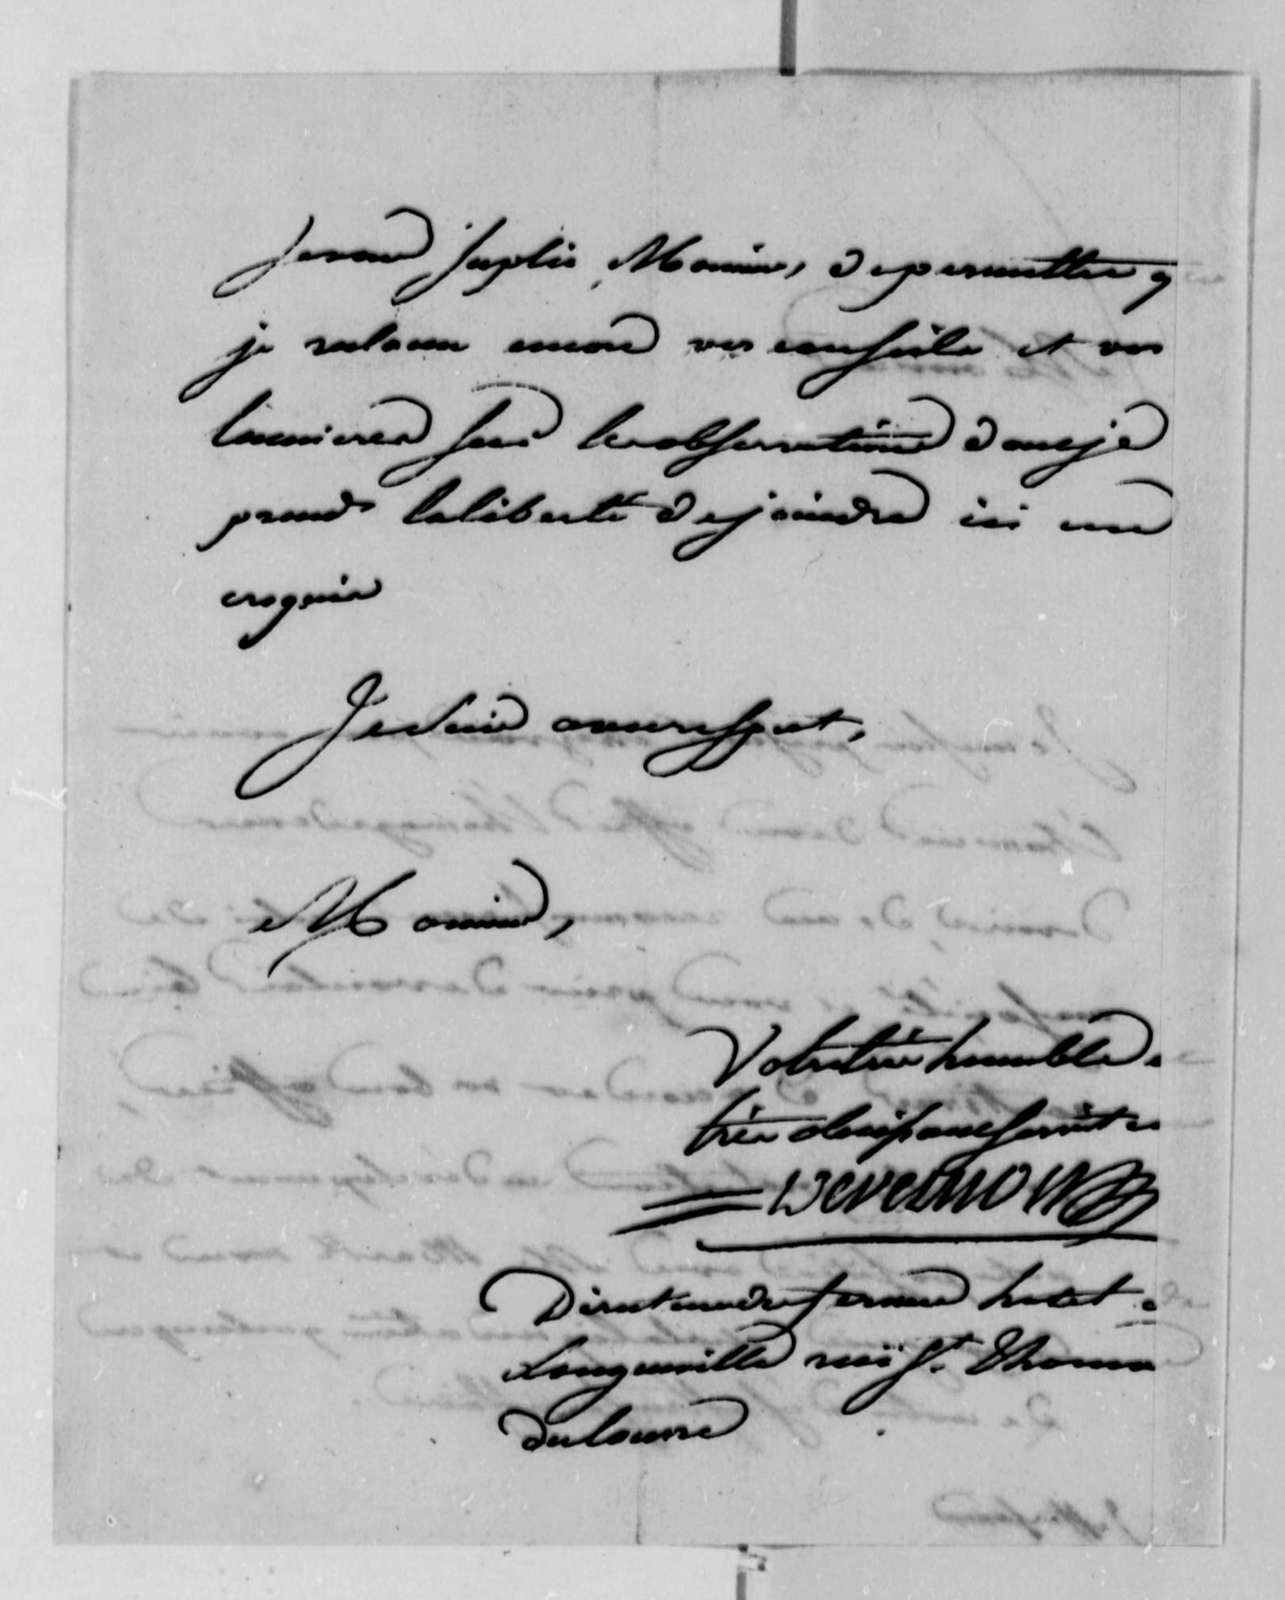 Jacob Vernes to Thomas Jefferson, February 18, 1788, in French